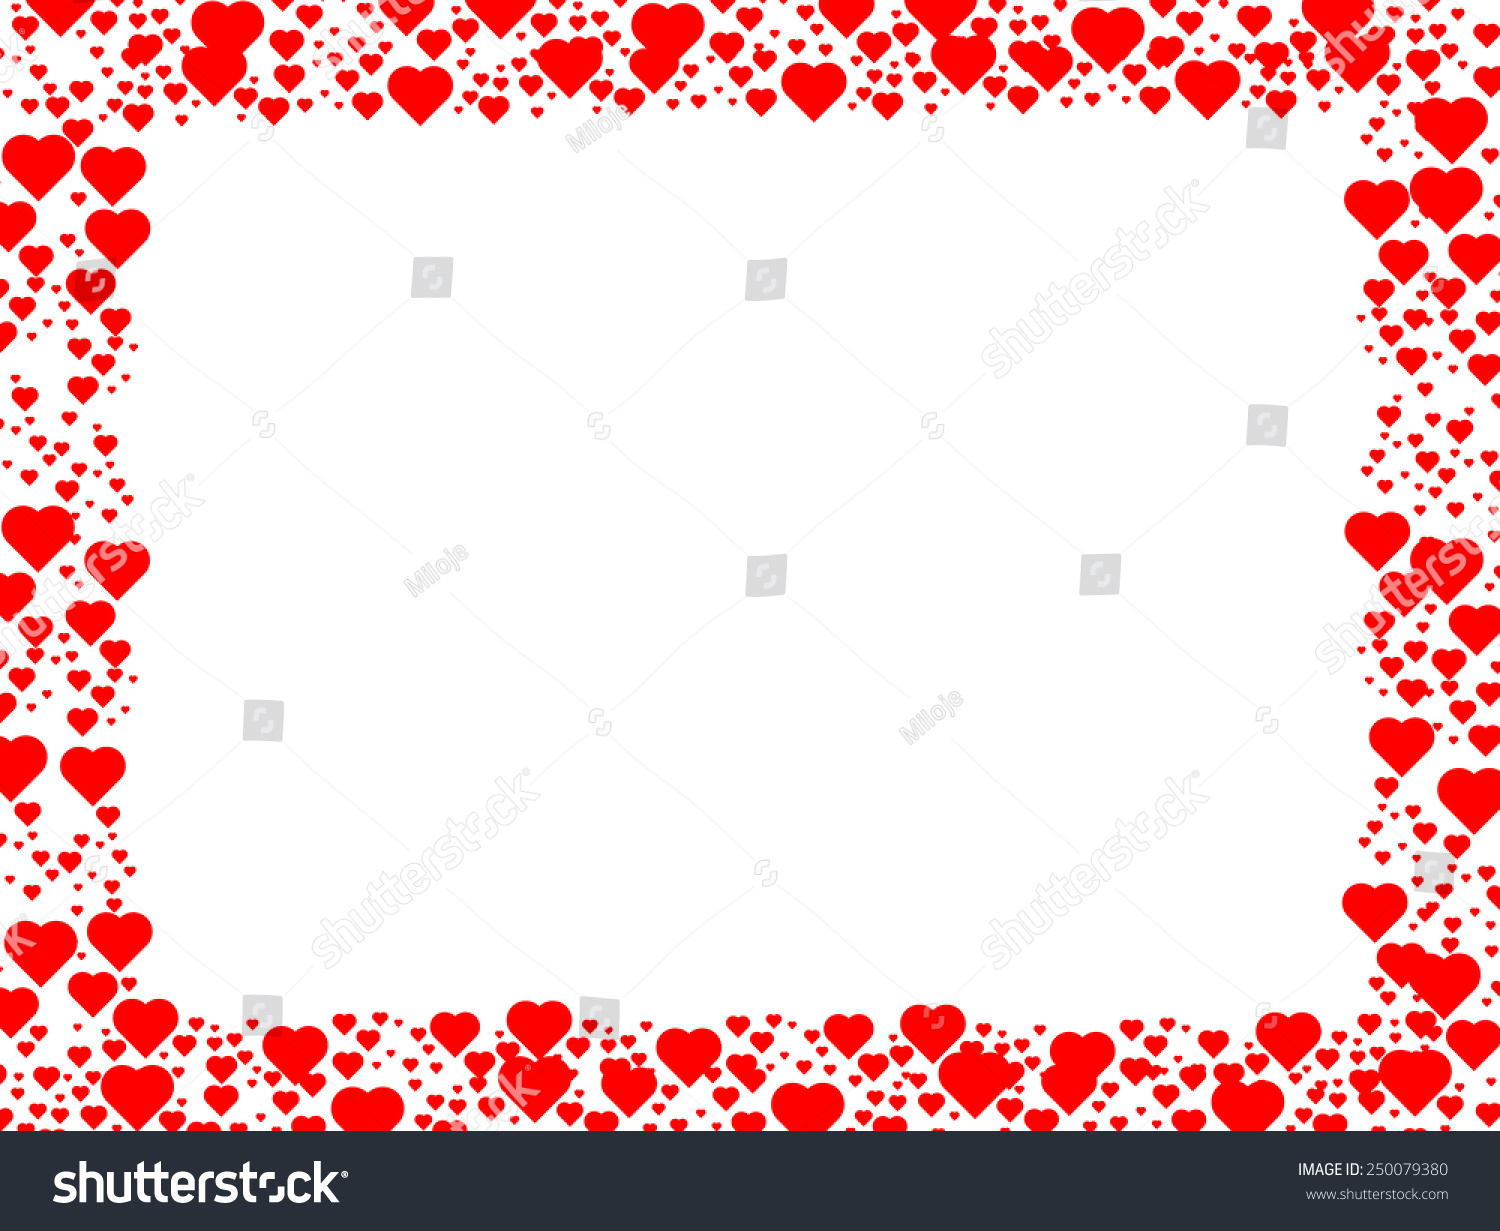 Valentines Day Background Red Hearts Border Stock Vector Royalty